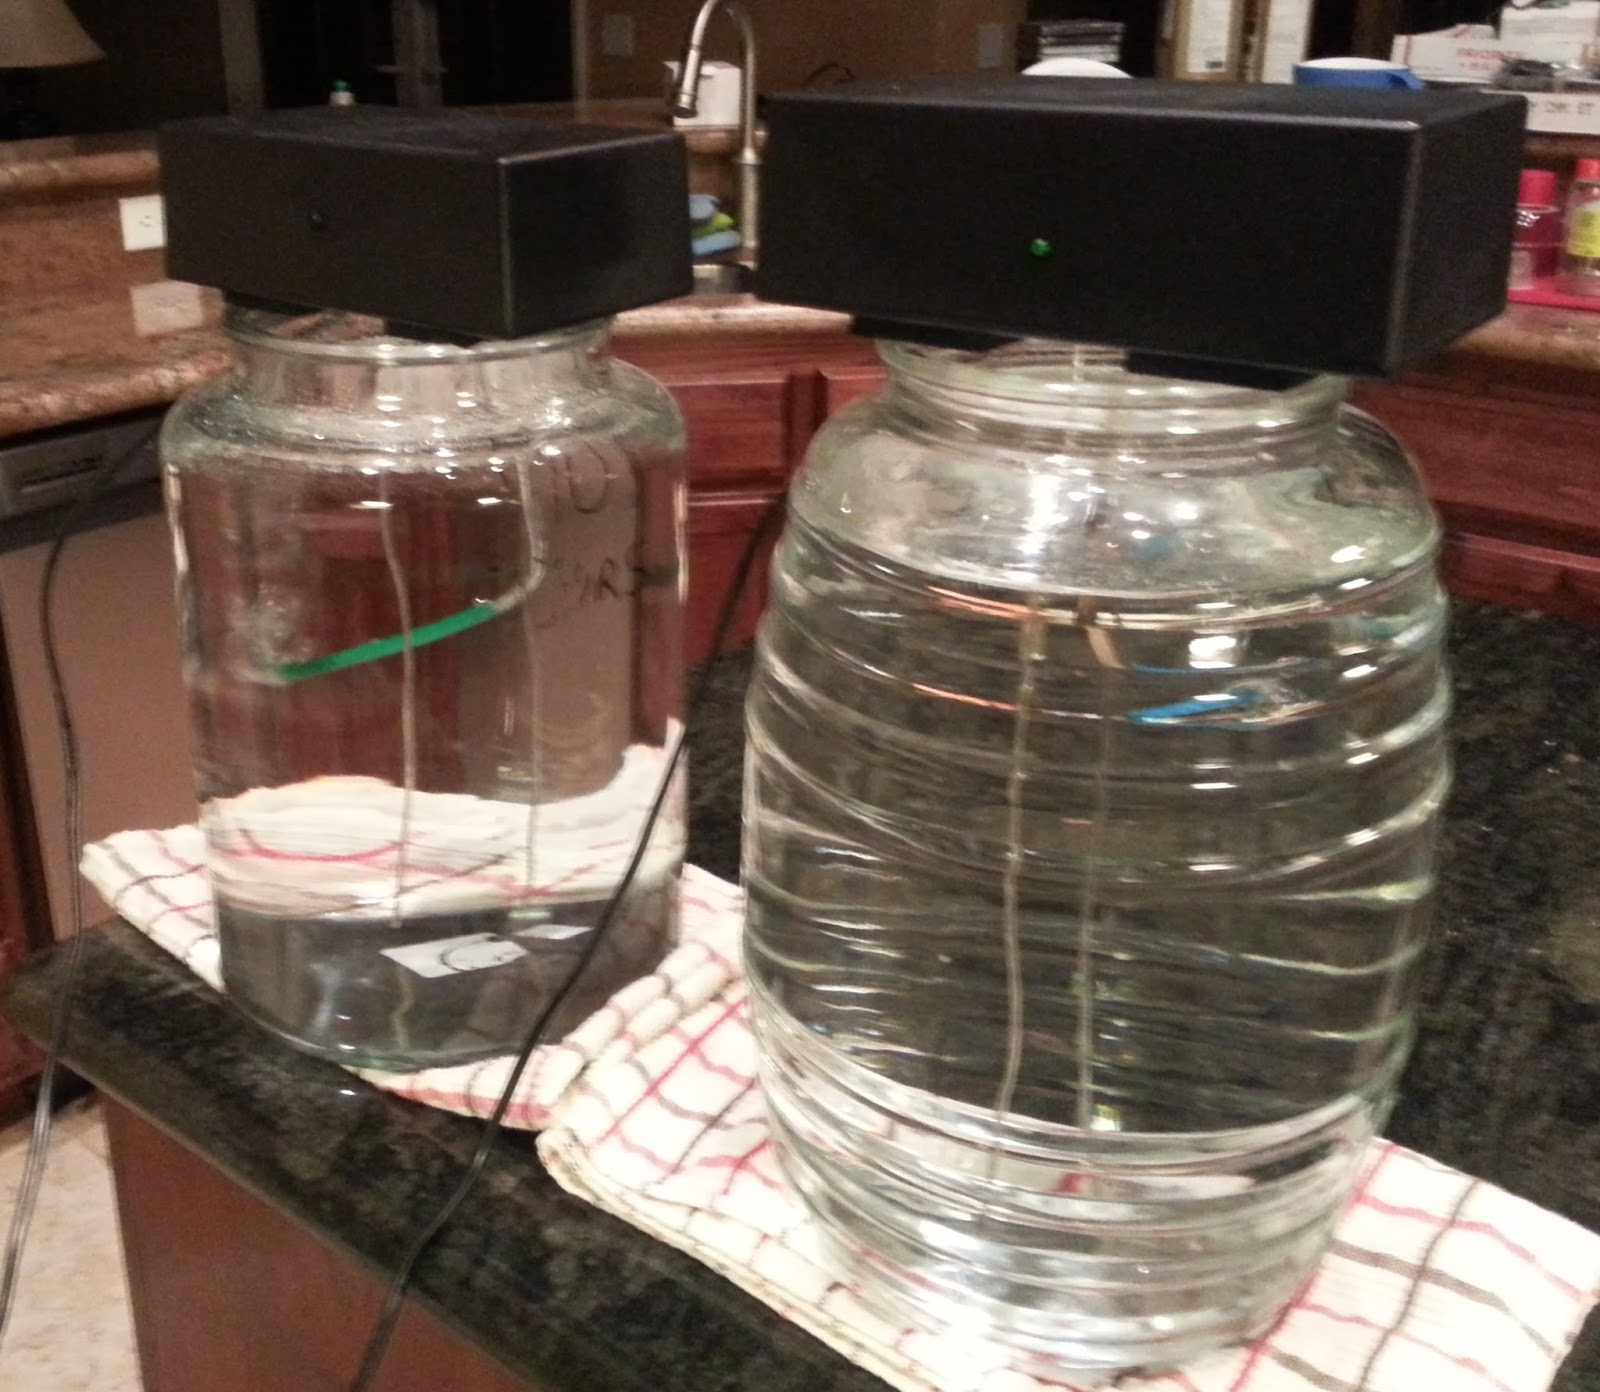 How to make monster-sized batches of colloidal silver for a few pennies; see www.TheSilverEdge.com...